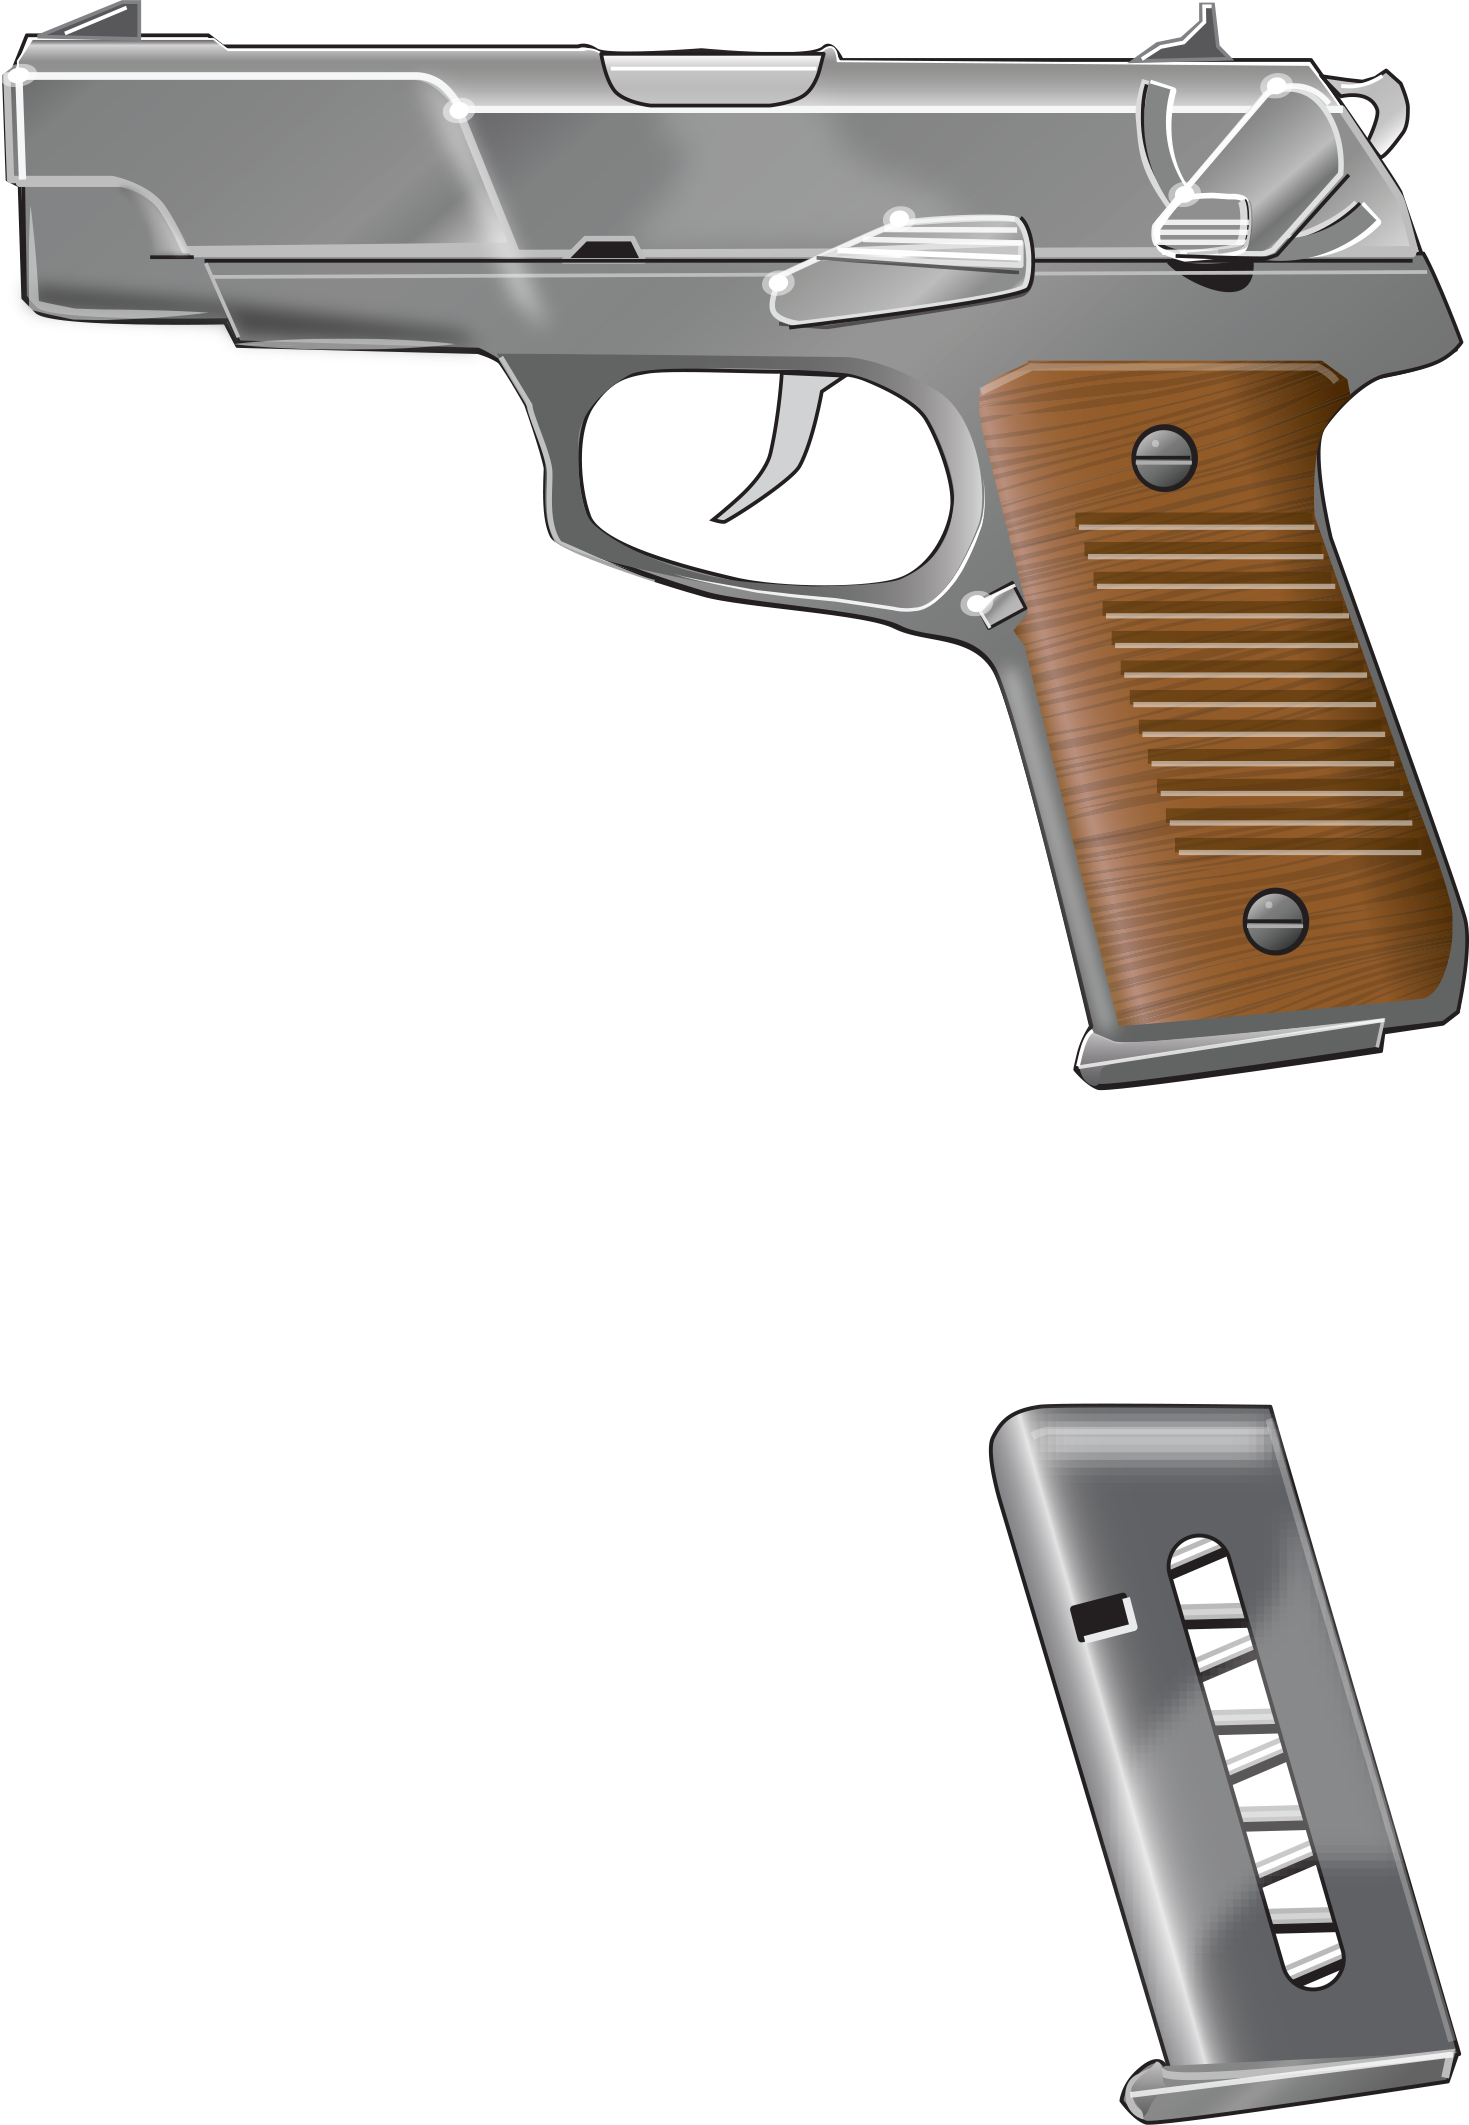 Revolver gun pointing png. Animation parts of a